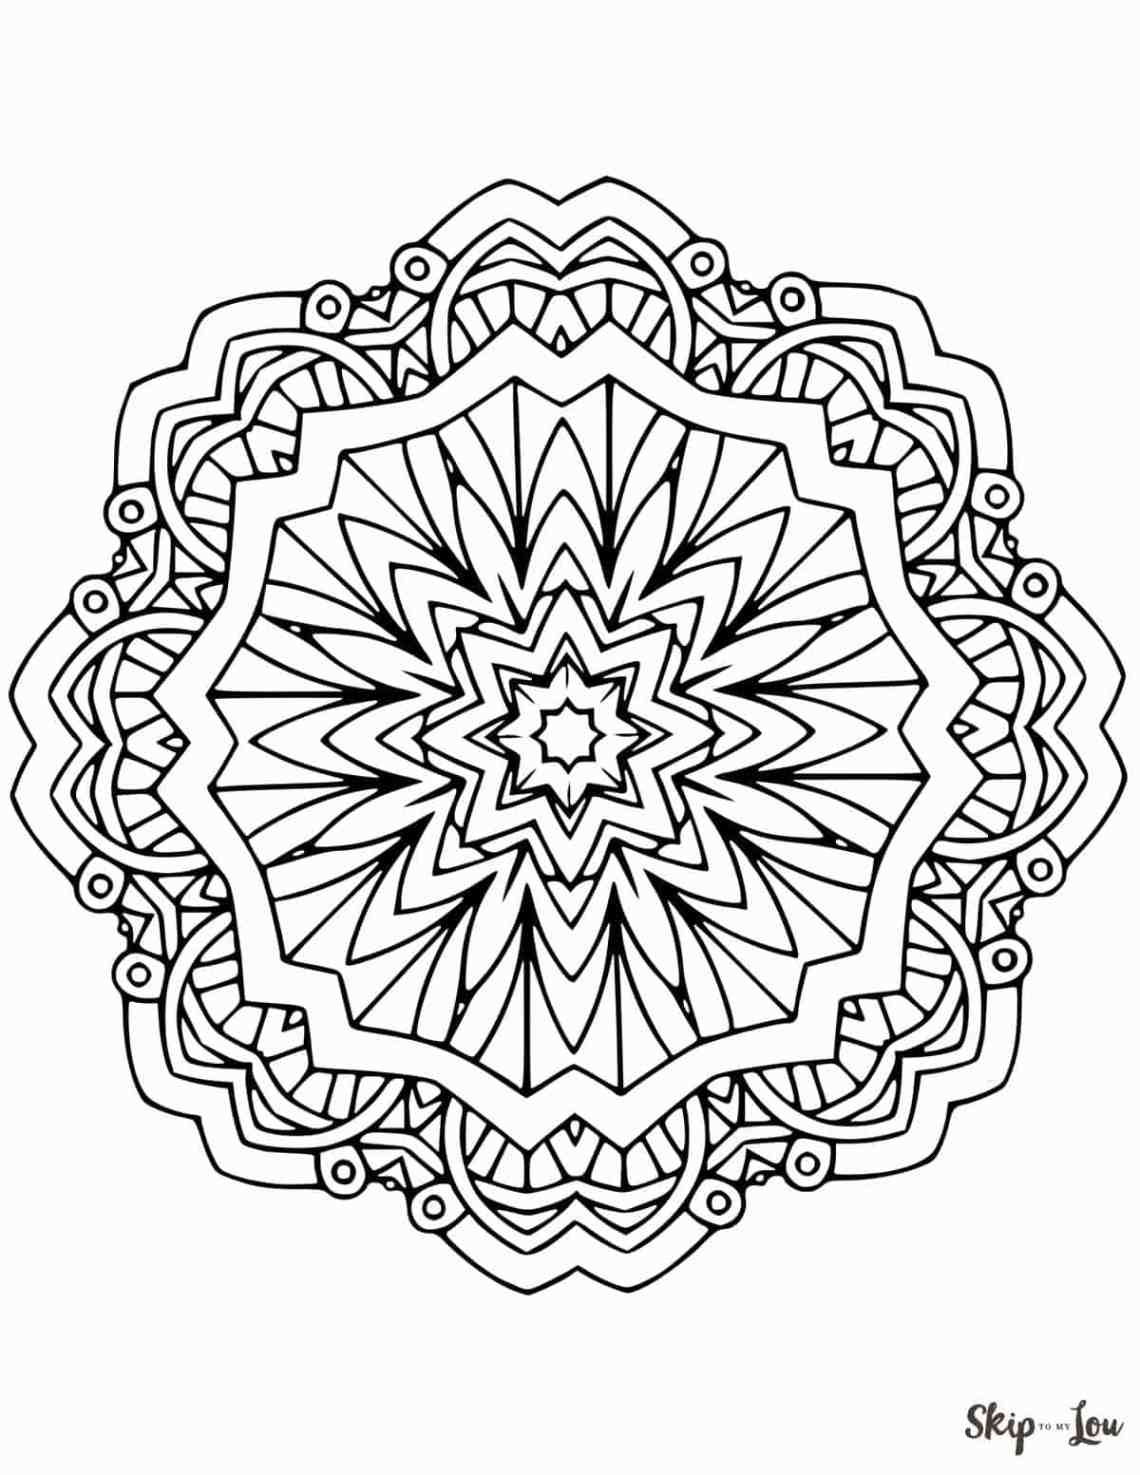 Beautiful FREE Mandala Coloring Pages | Skip To My Lou | free online mandala coloring pages for adults